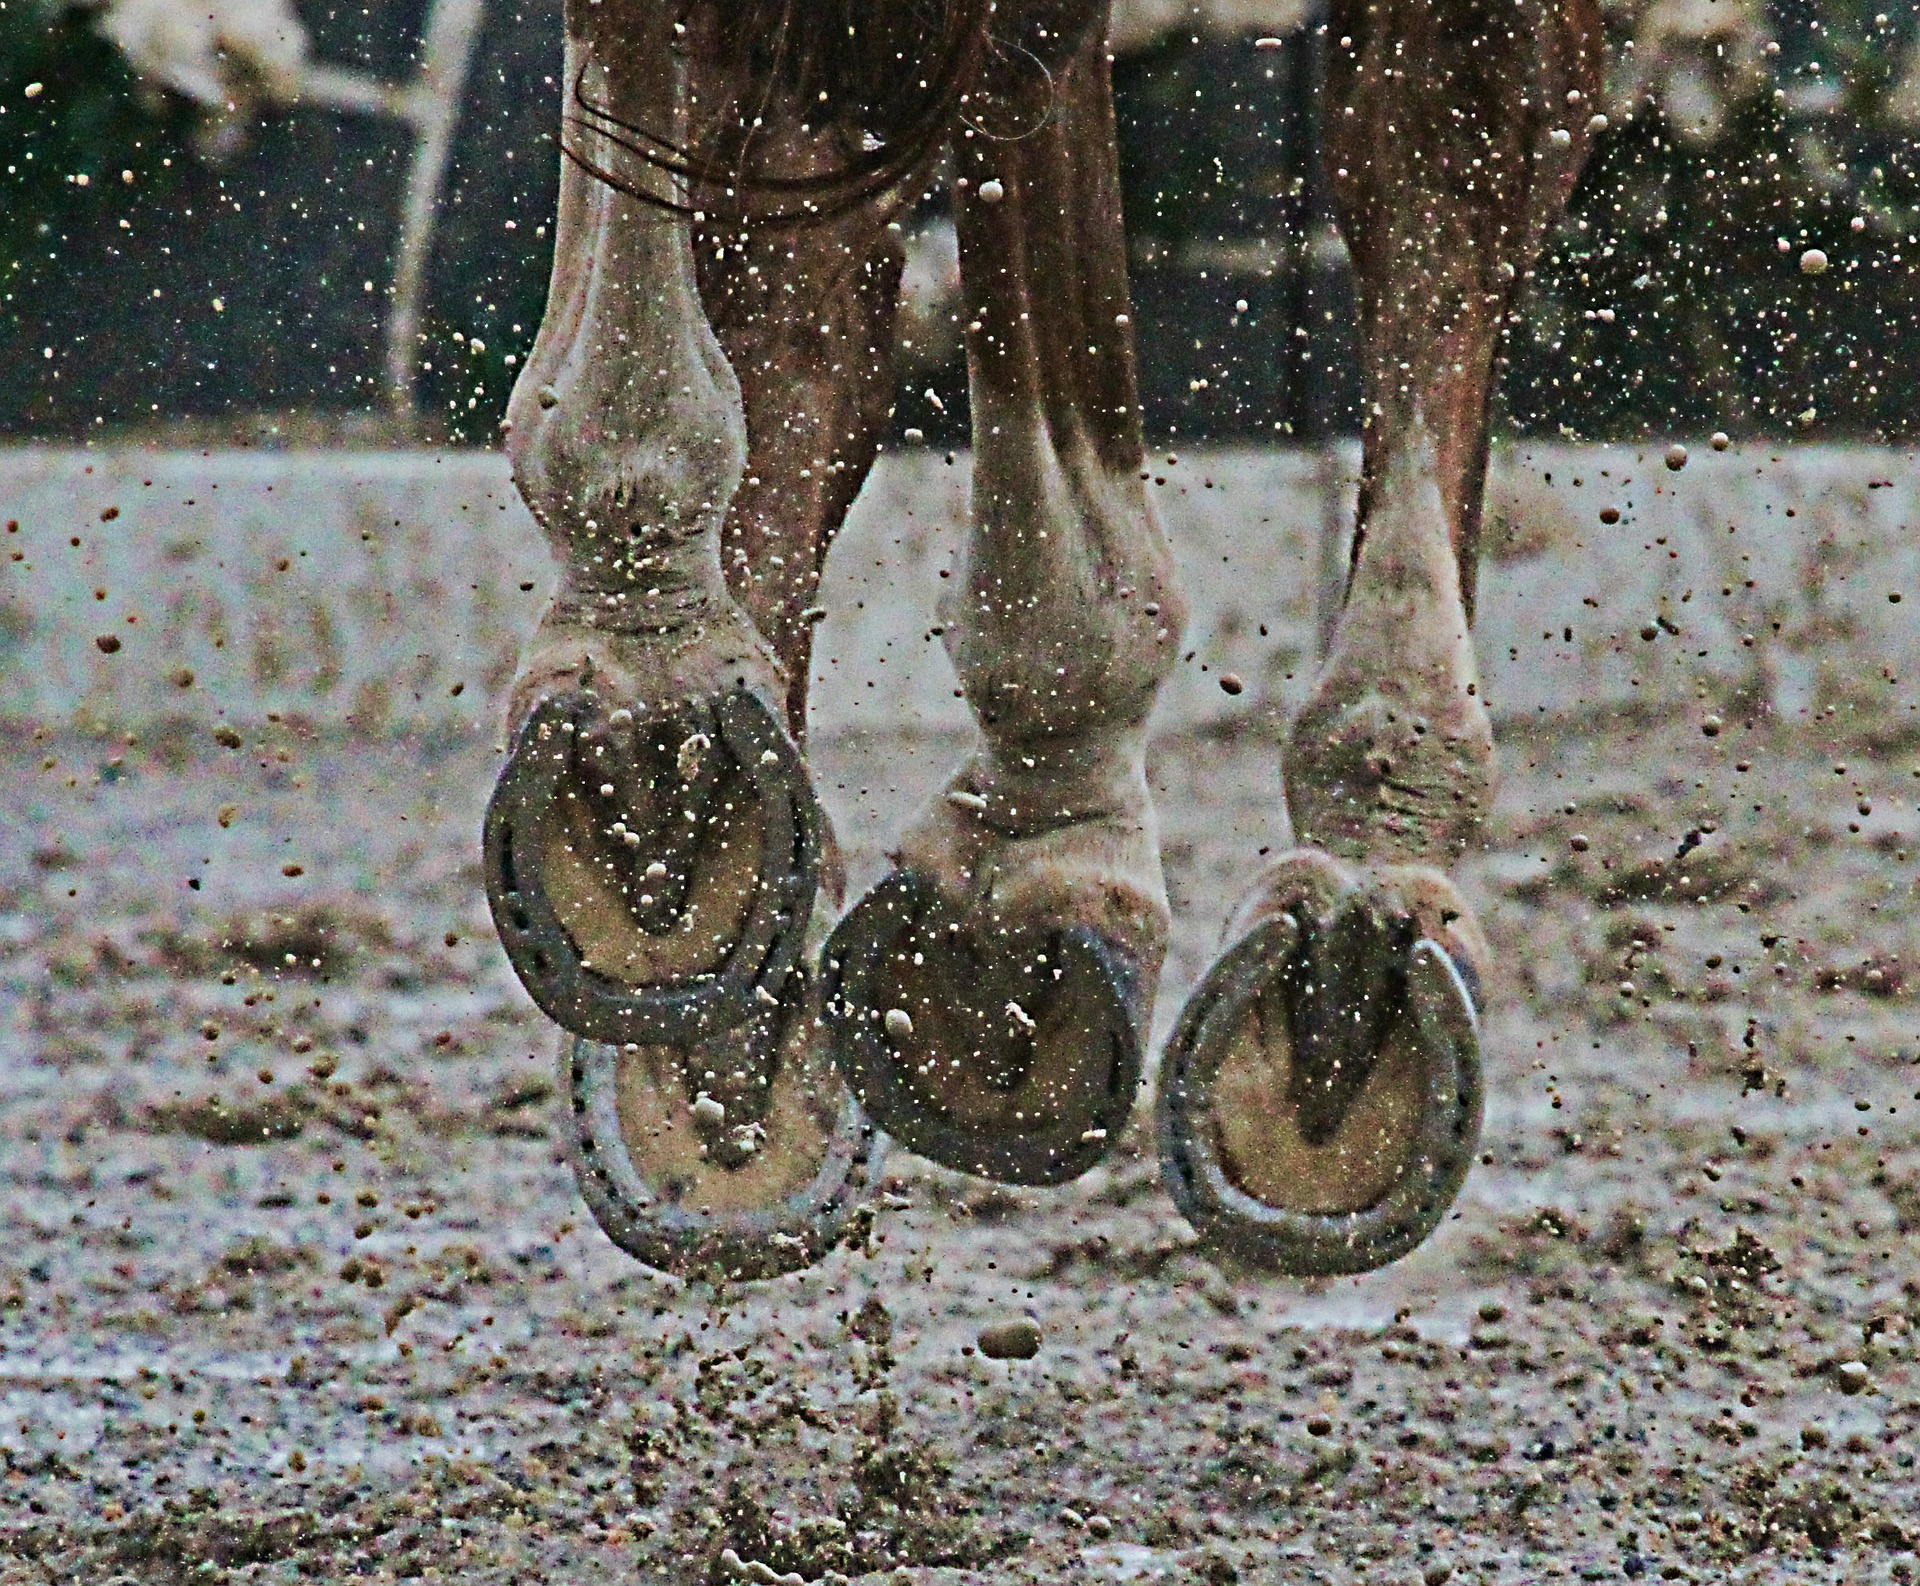 Mud and rain are common environmental factors that cause the bacteria to flare up and cause scratches in horses.